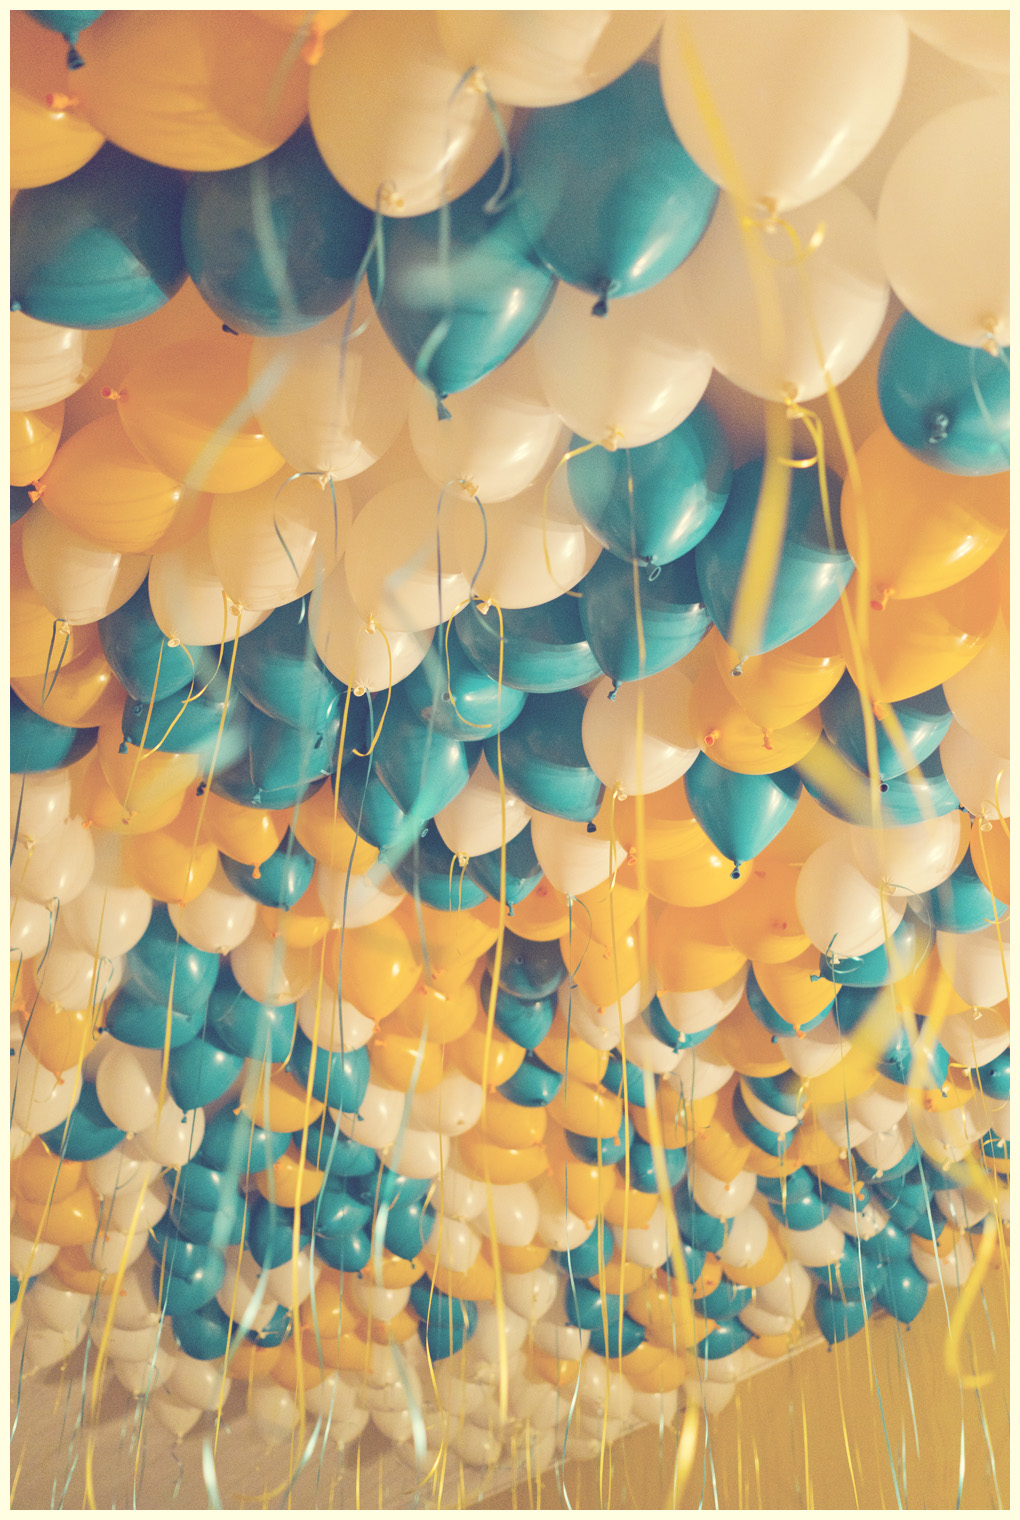 Marco  filled the house with 700 balloons for my 30th birthday. It was an extraordinary party!